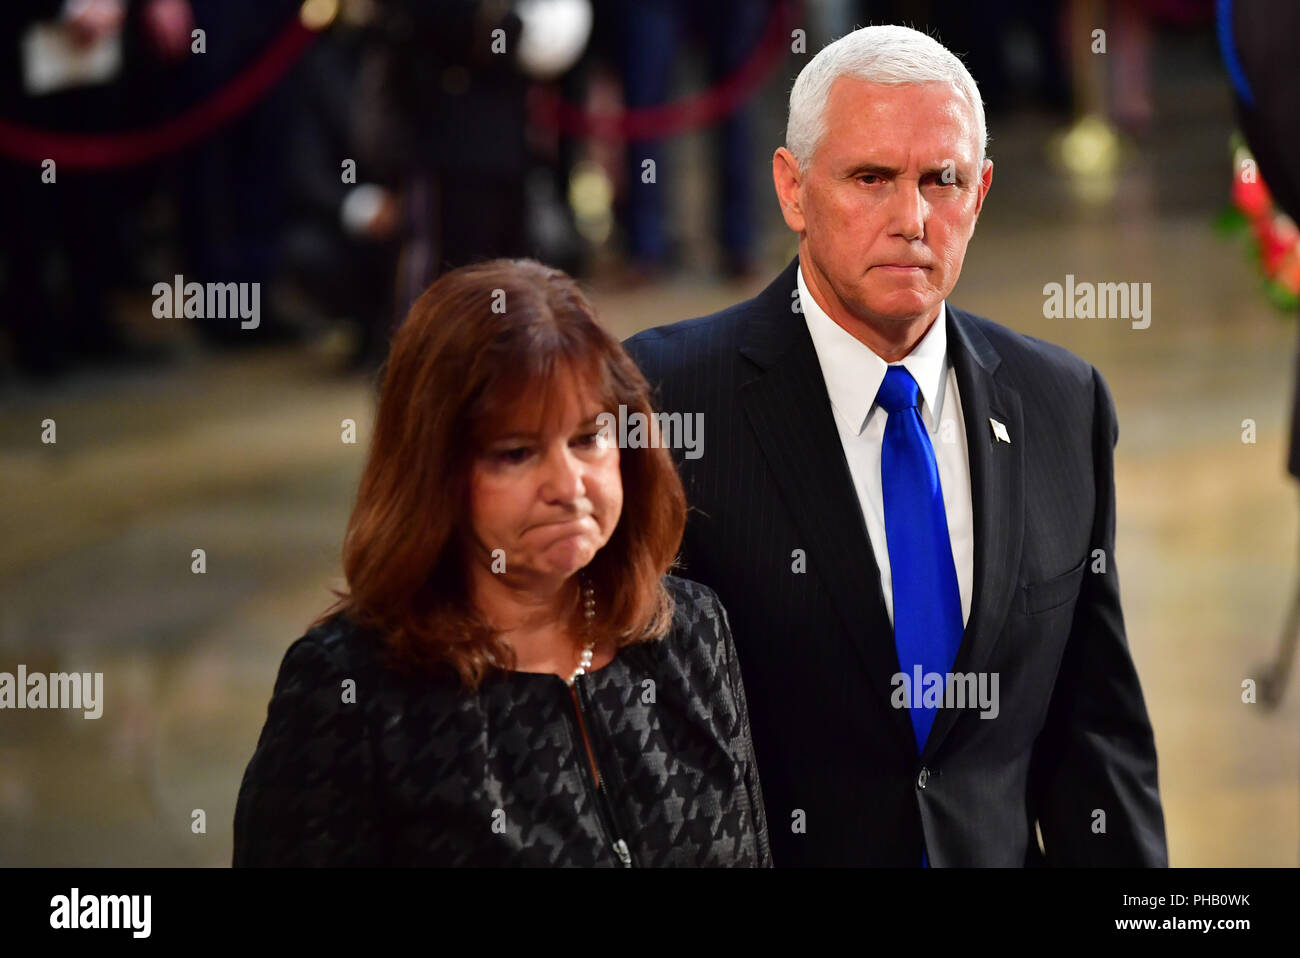 Vice President Of The United States Mike Pence And Wife Karen Pence View The Casket Of Former Senator John Mccain In The Capitol Rotunda Where He Will Lie In State At The